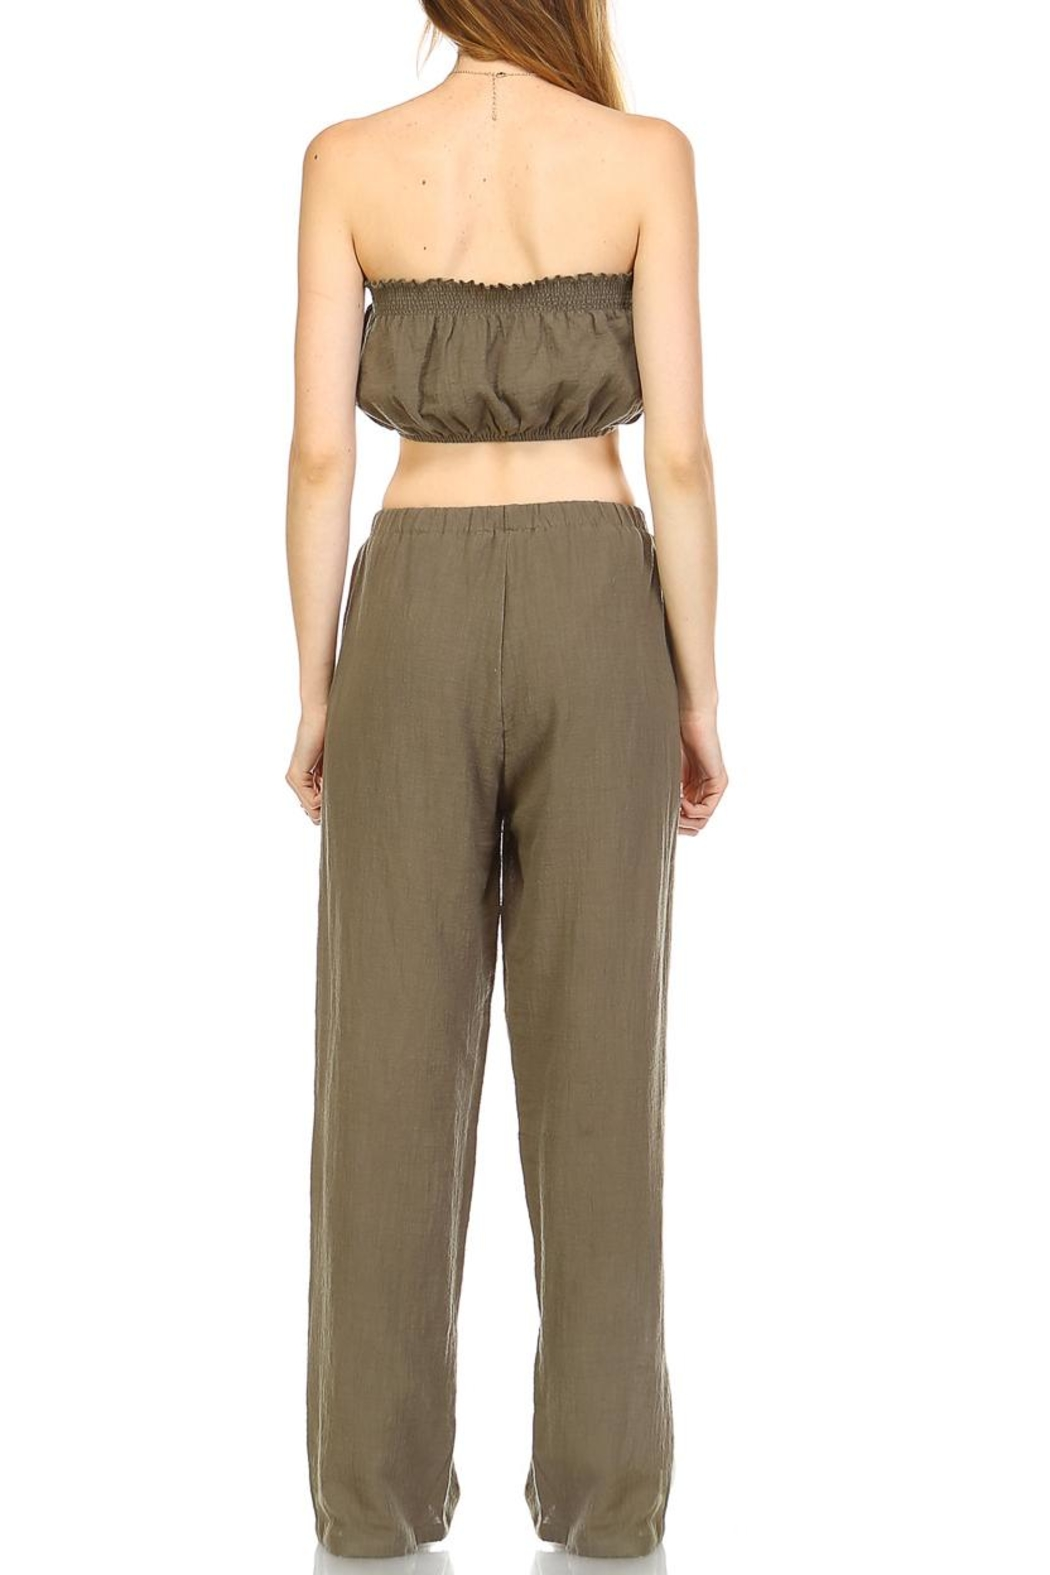 hers and mine Crop Pant Set - Back Cropped Image